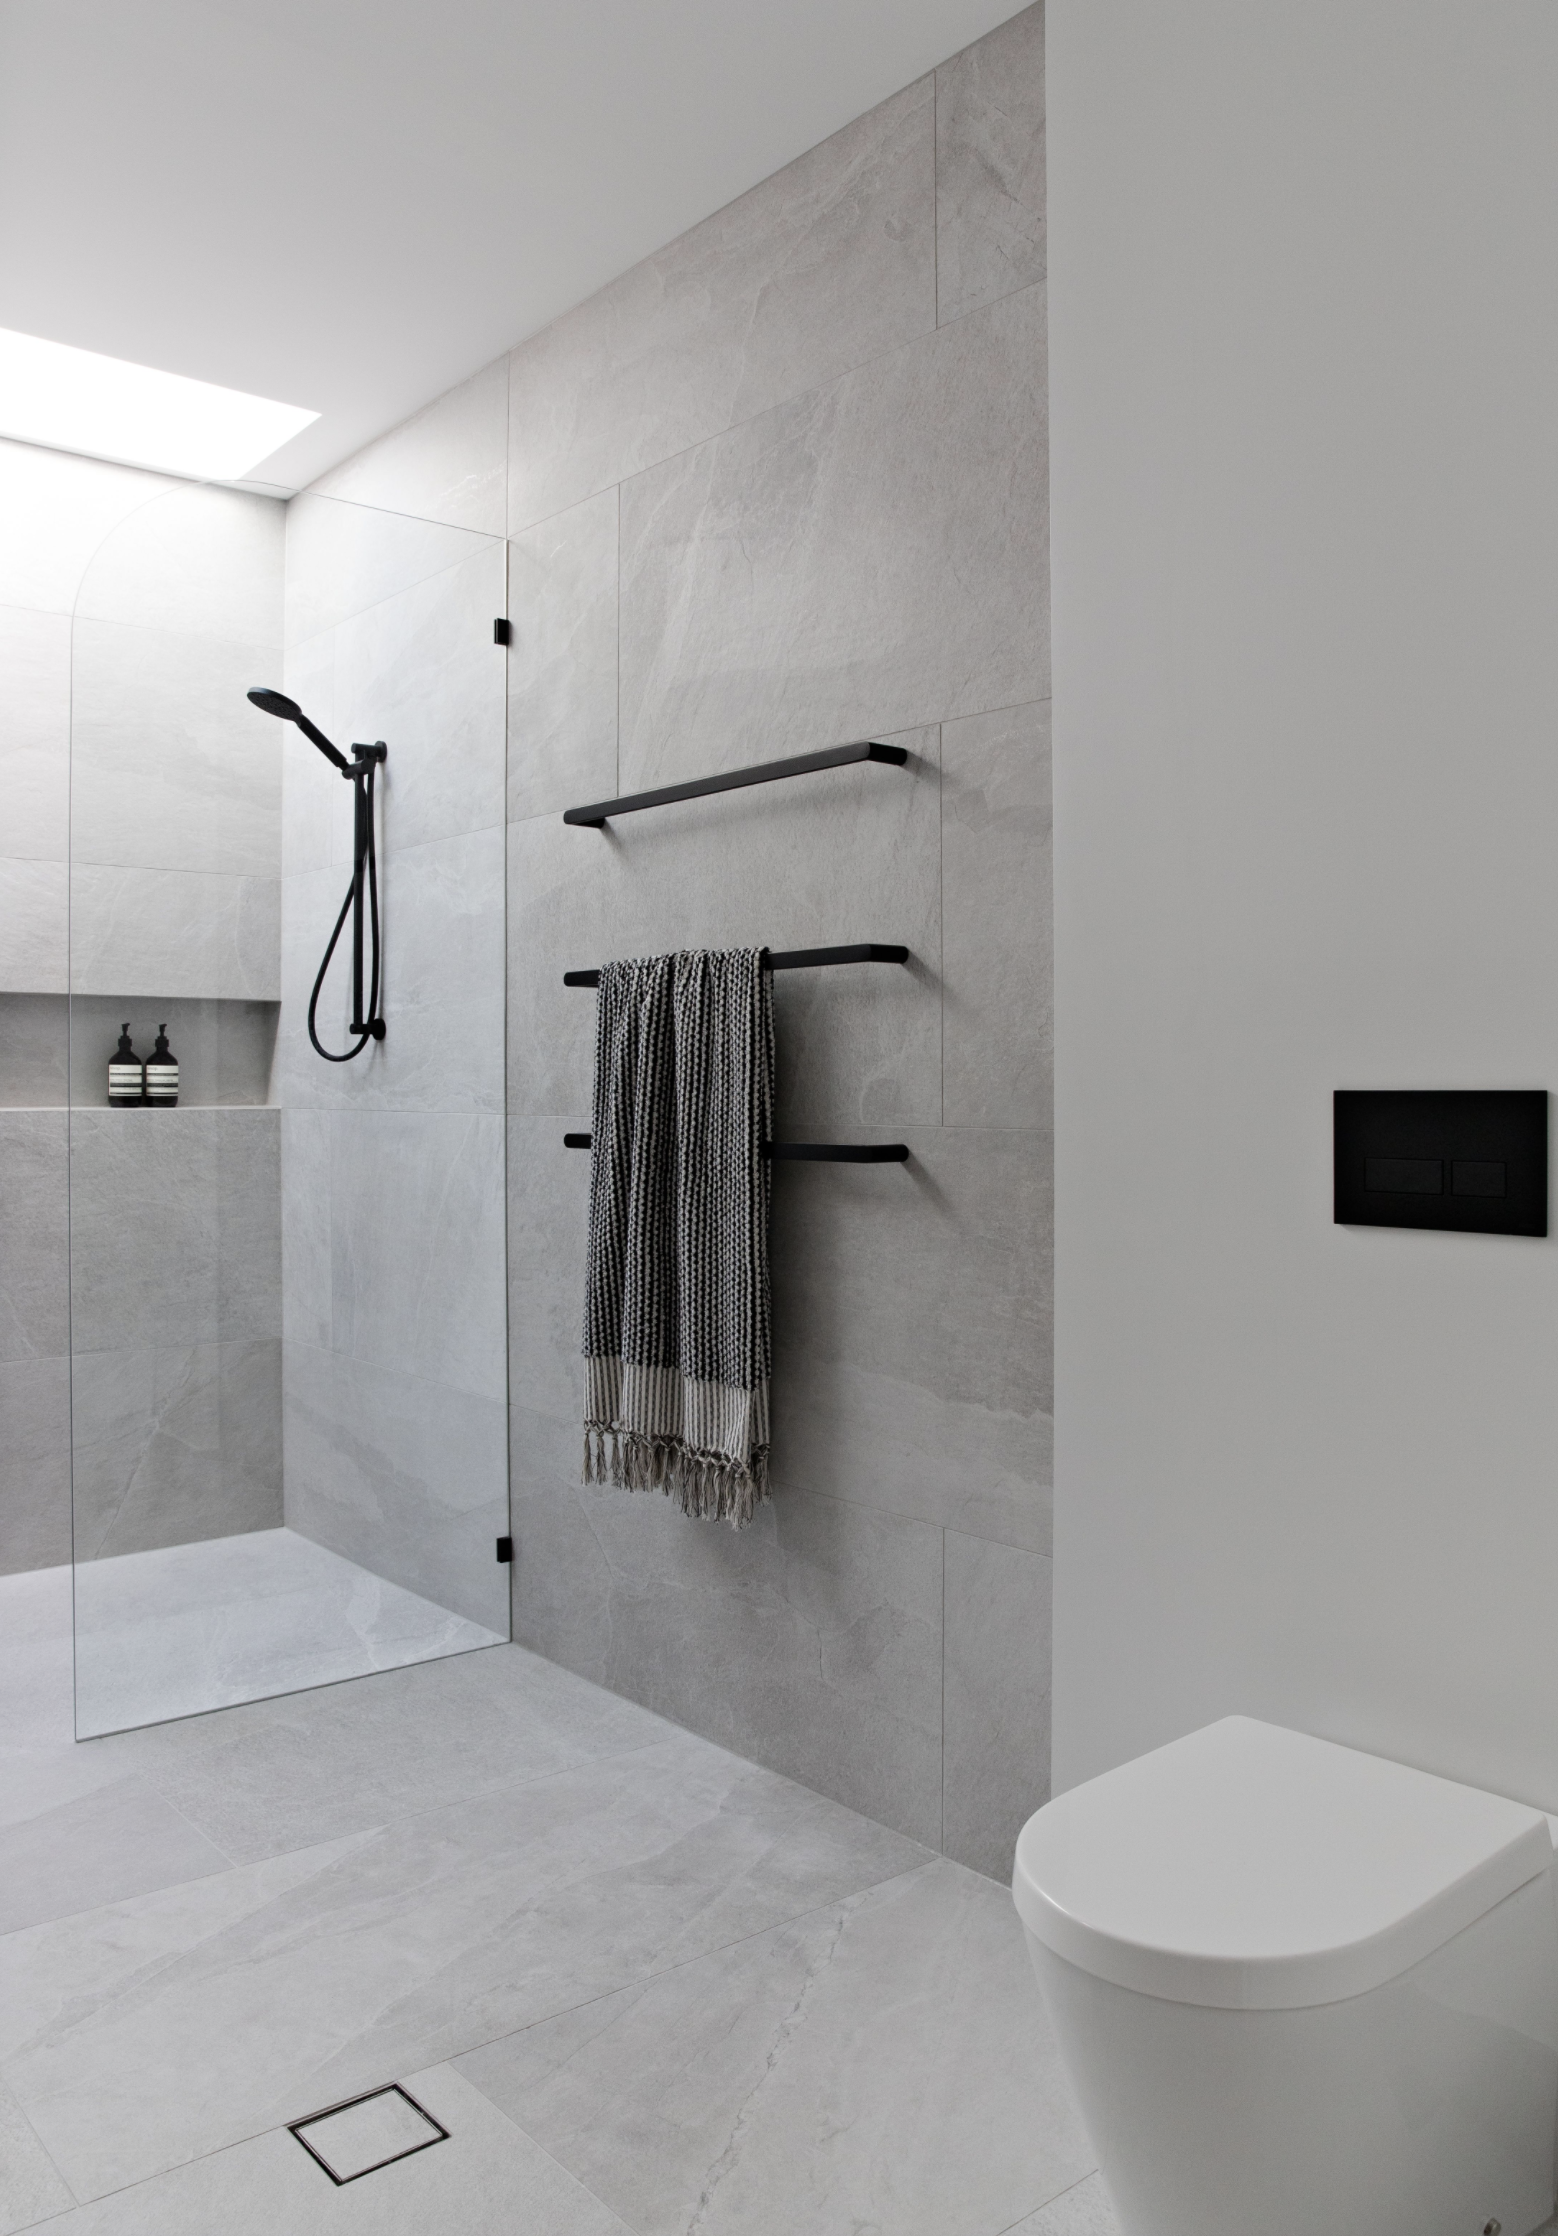 scandi ensuite colour scheme zephyr in 2020 81 Bathroom Design And Tips For Designing Your Own Bathroom id=91128